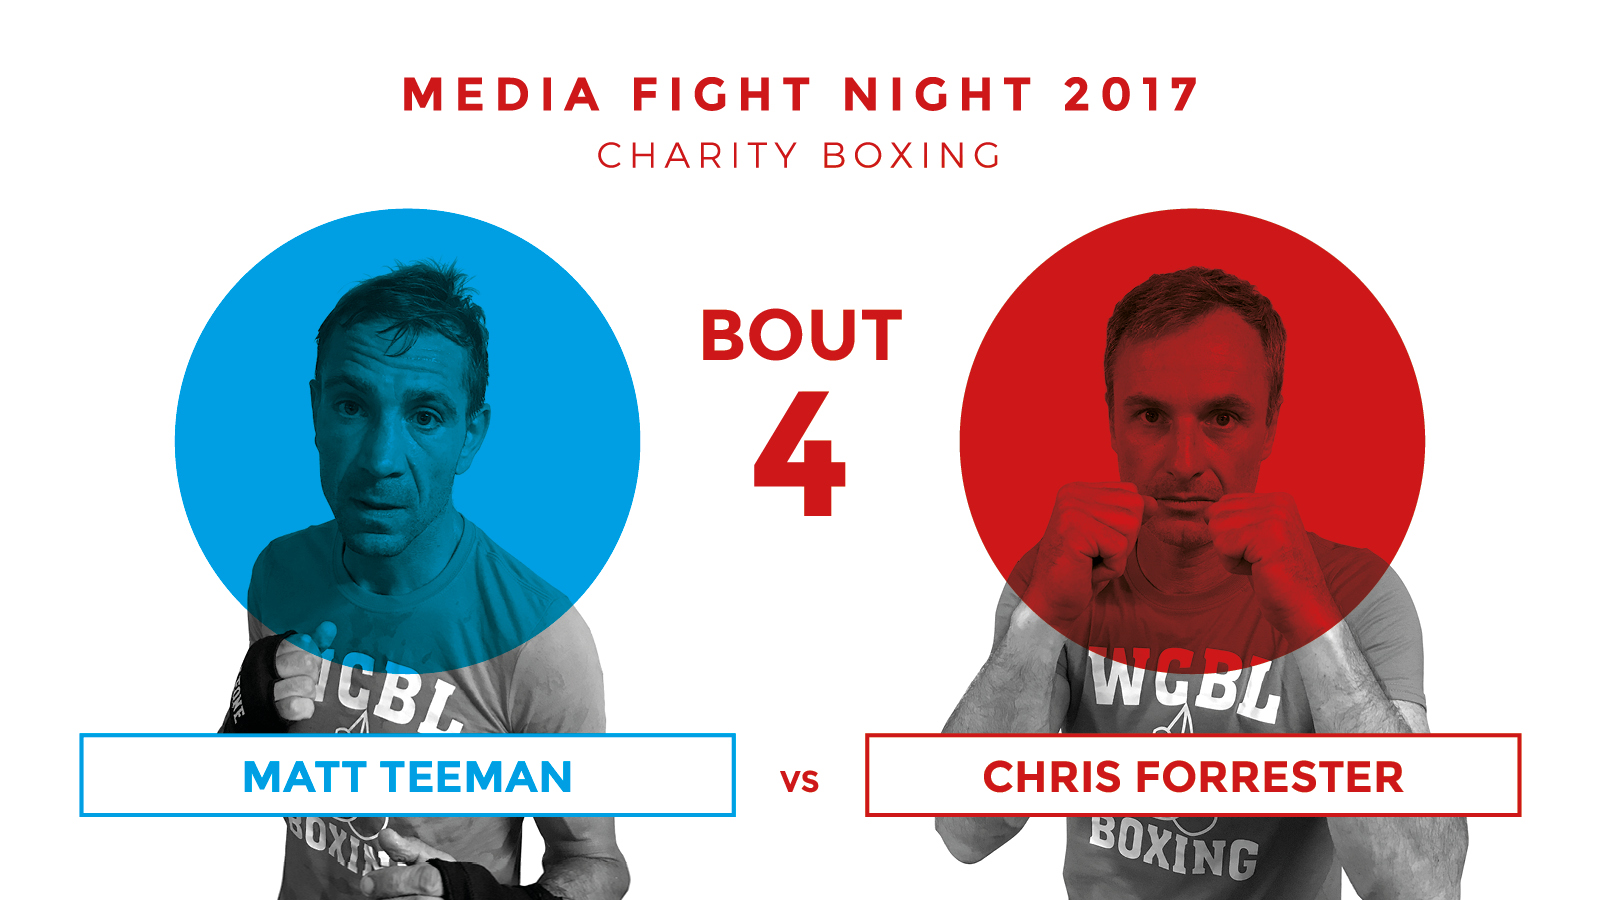 charity-boxing-designed-by-also-agency-bout-4.jpg